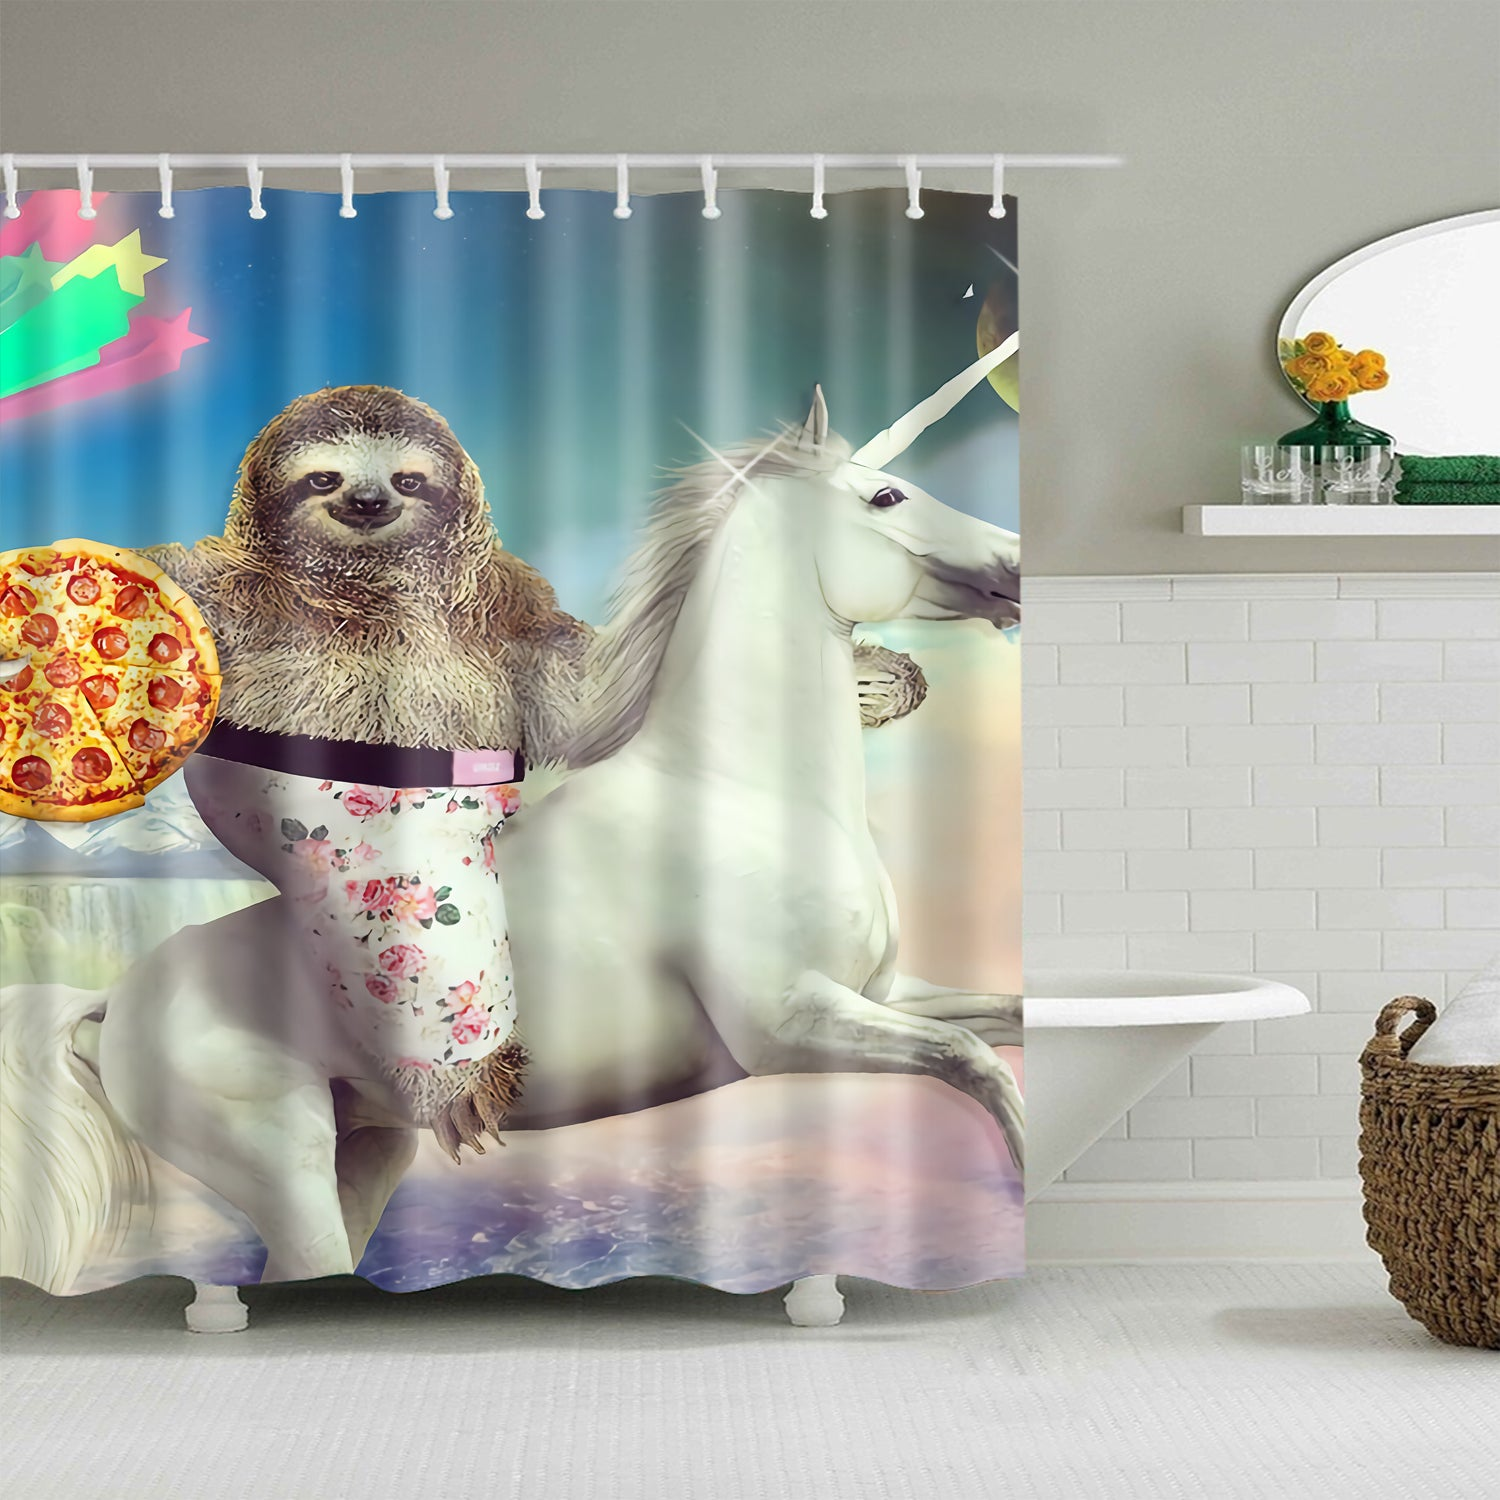 Pizza Sloth Riding Unicorn Shower Curtain